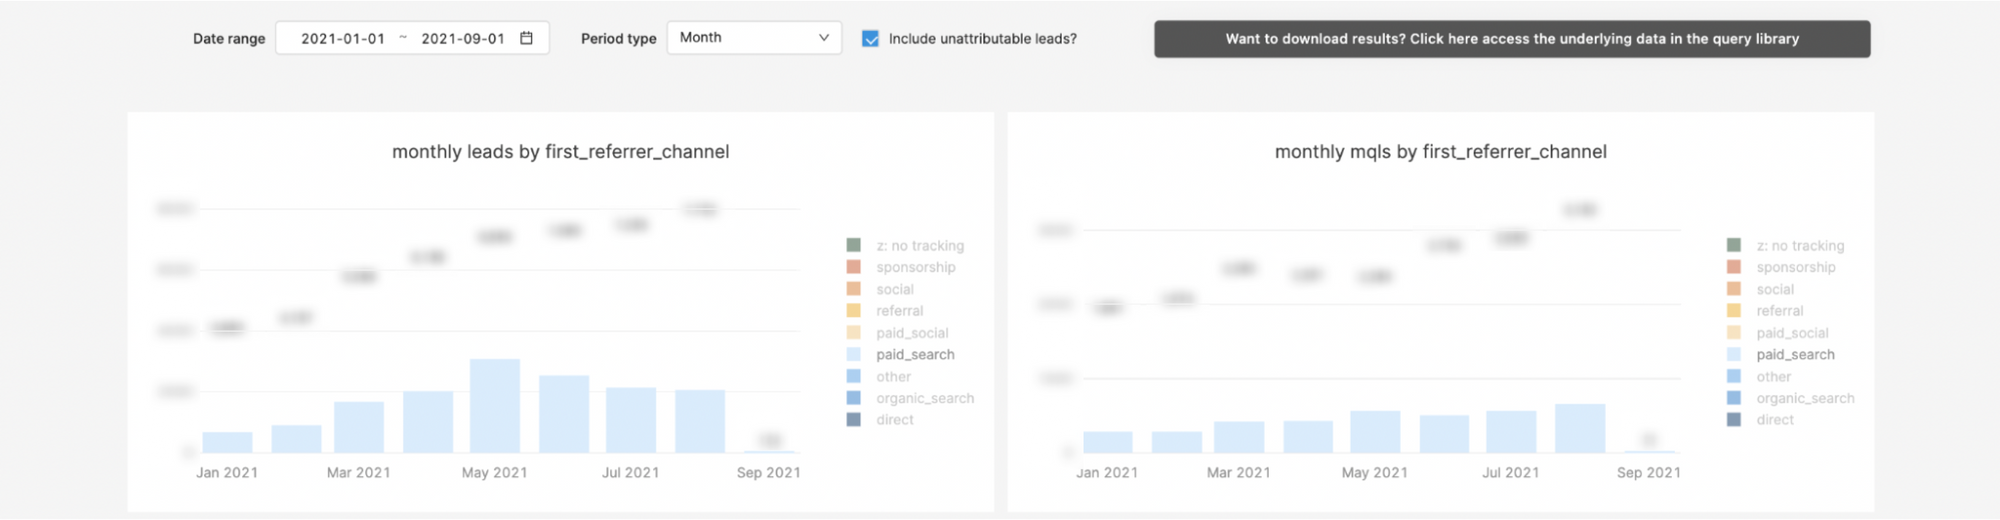 Marketing dashboard for MQLs and leads side-by-side